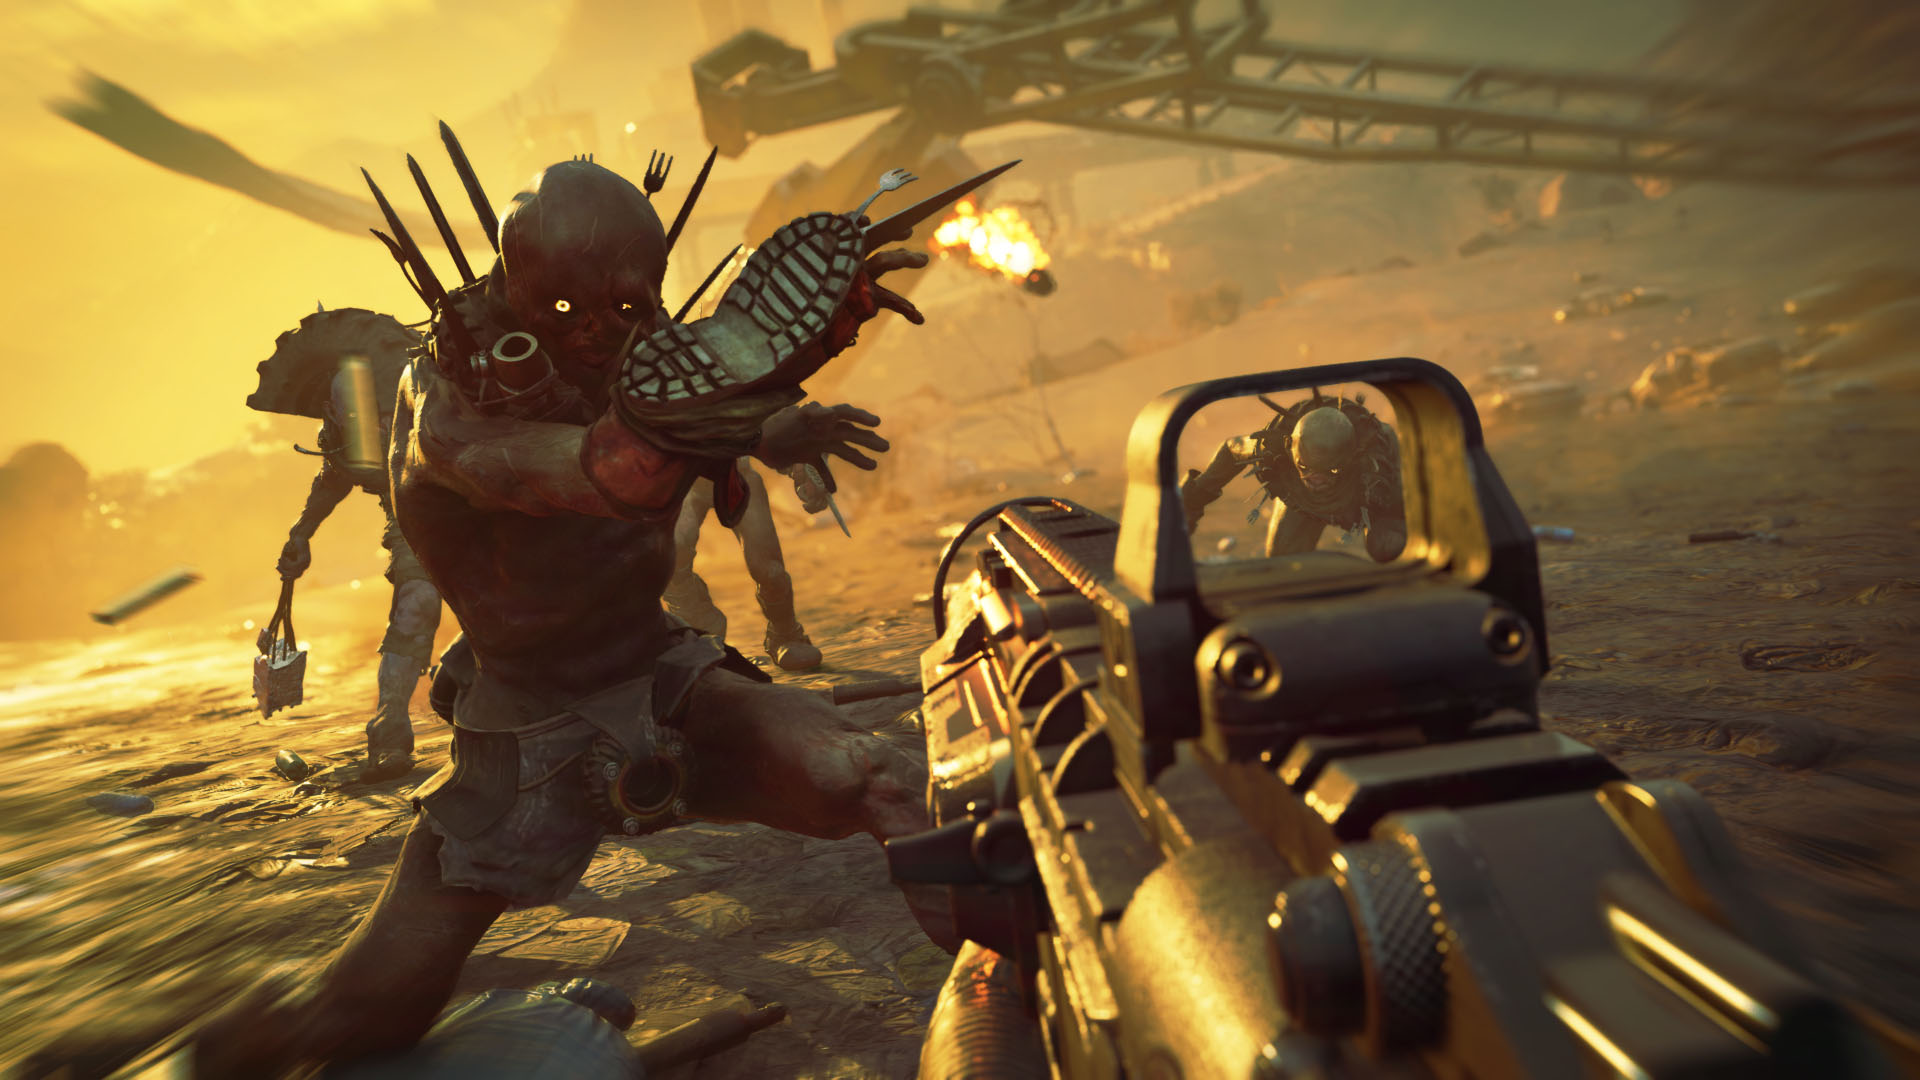 Rage 2 tips: 8 pieces of advice to make conquering the wasteland a